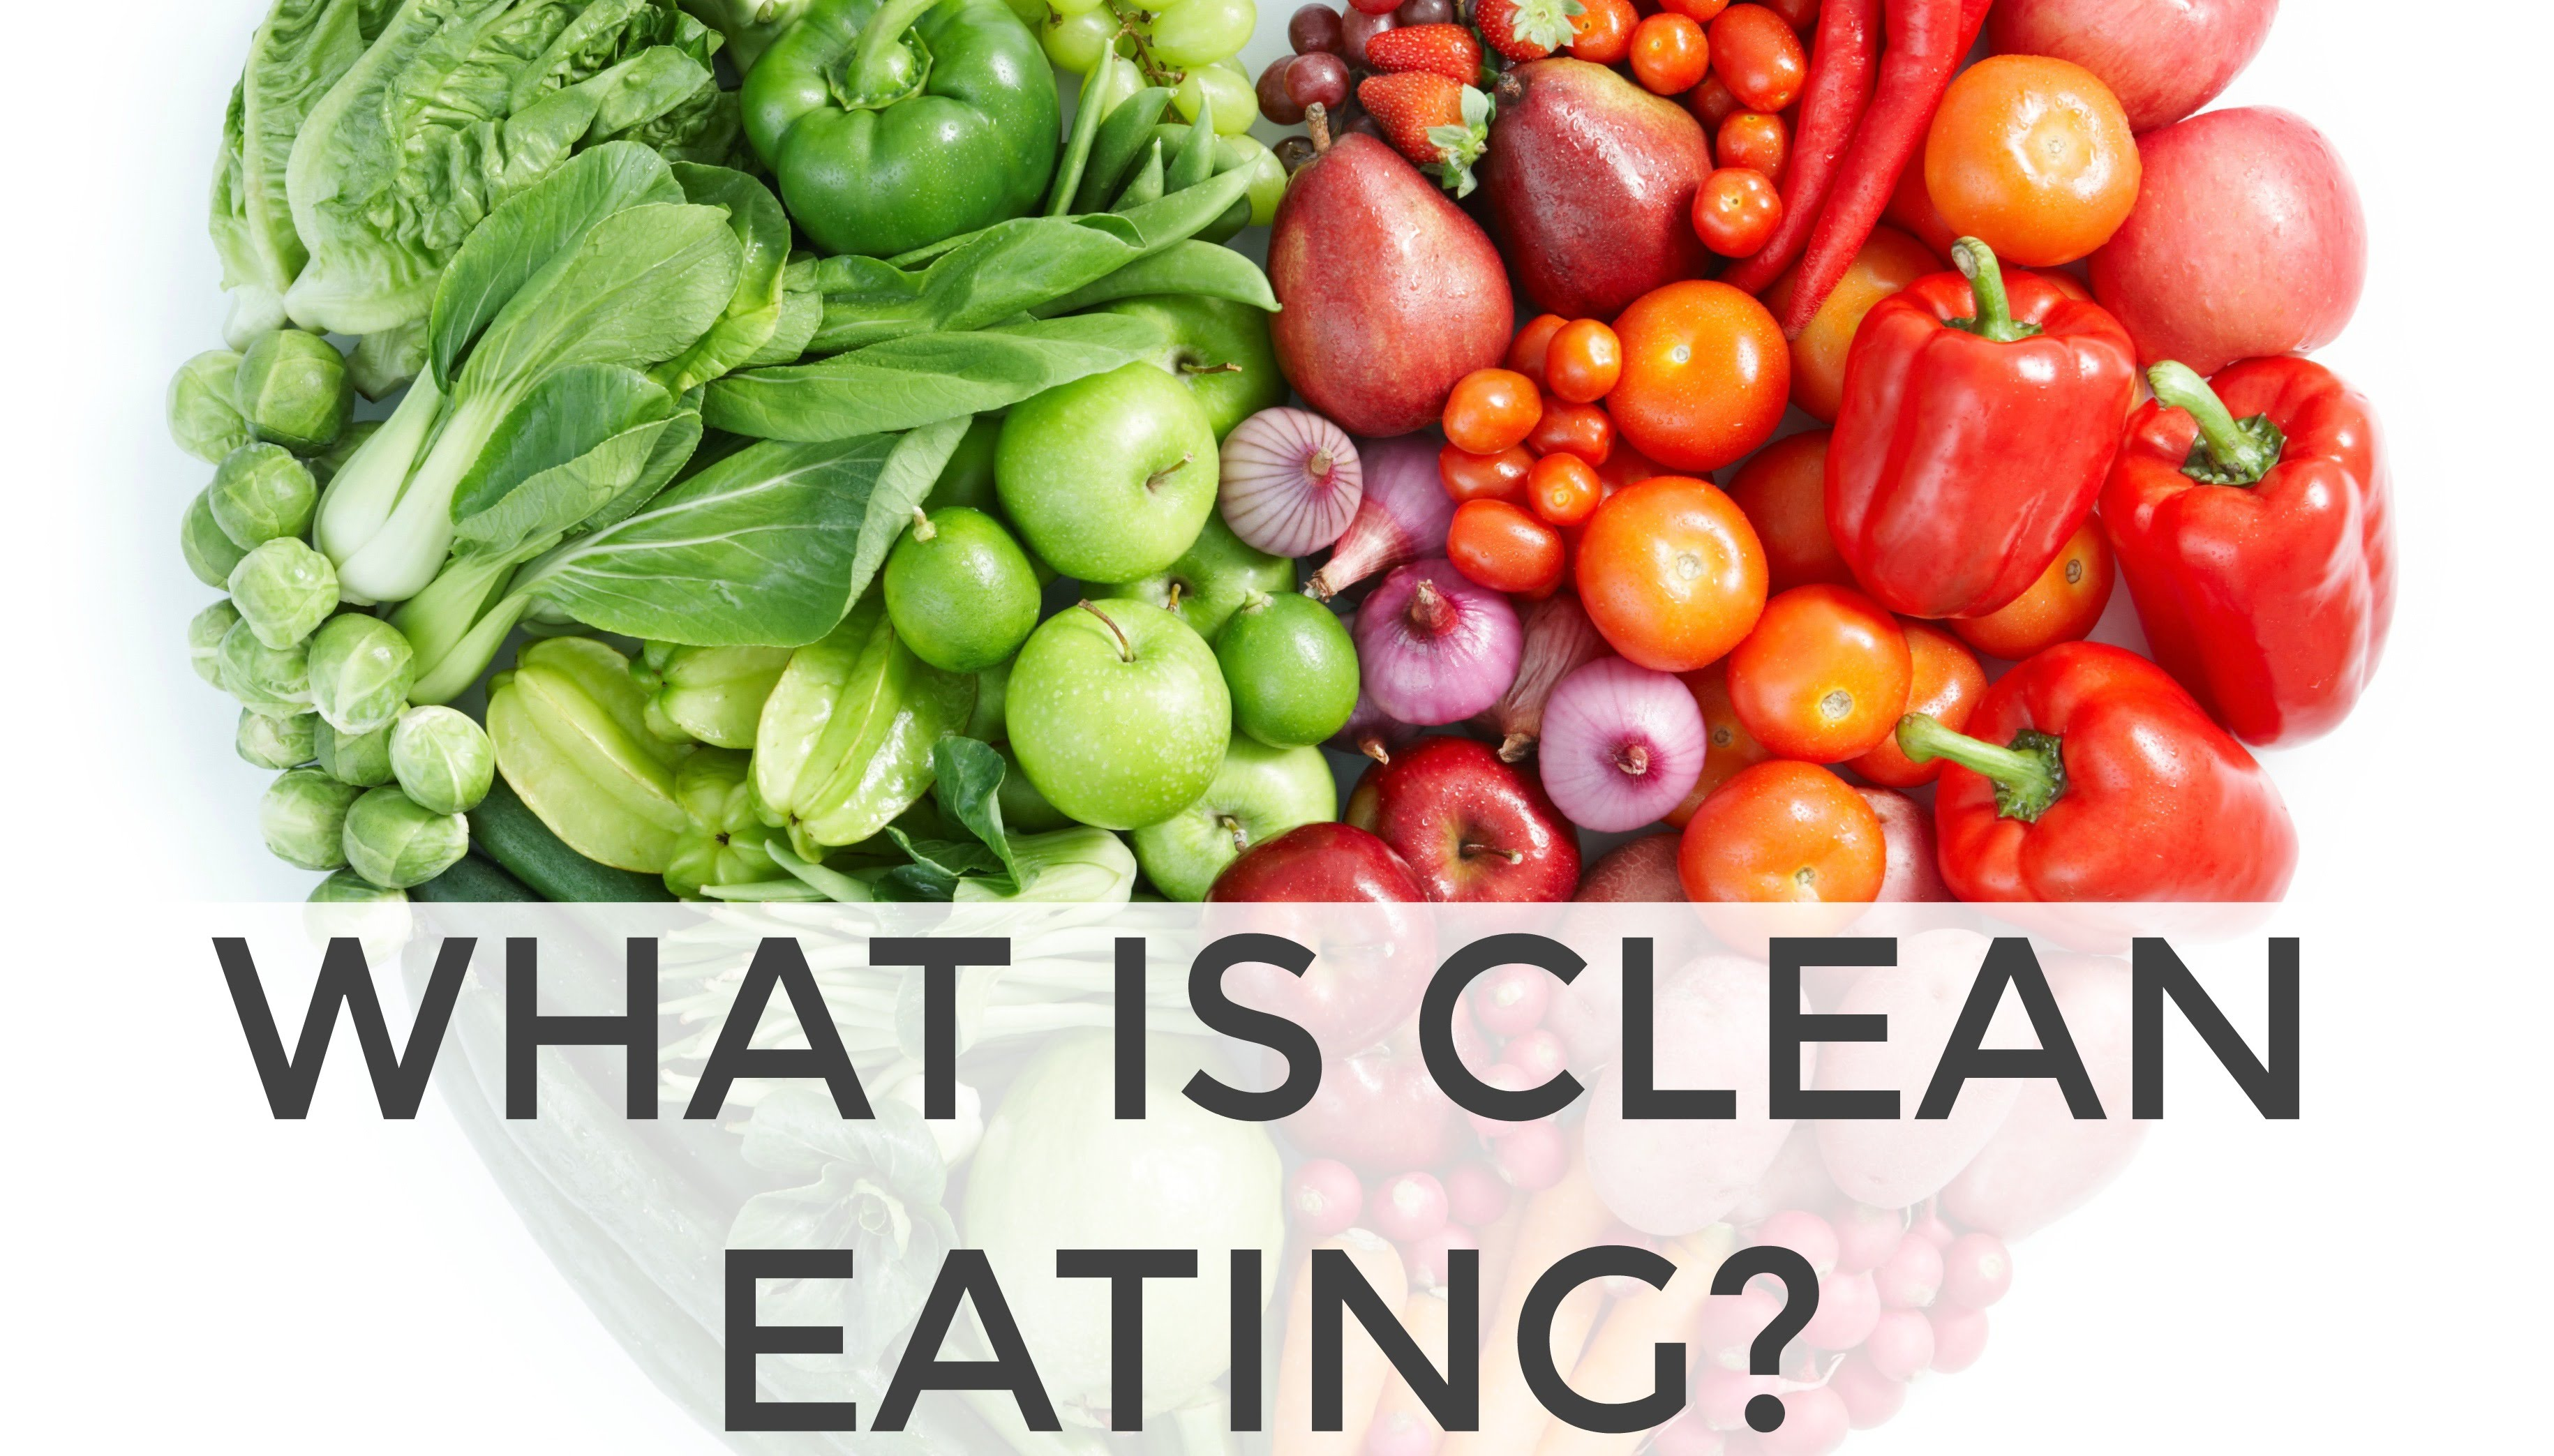 What is Clean Eating with 5 Simple Guidelines